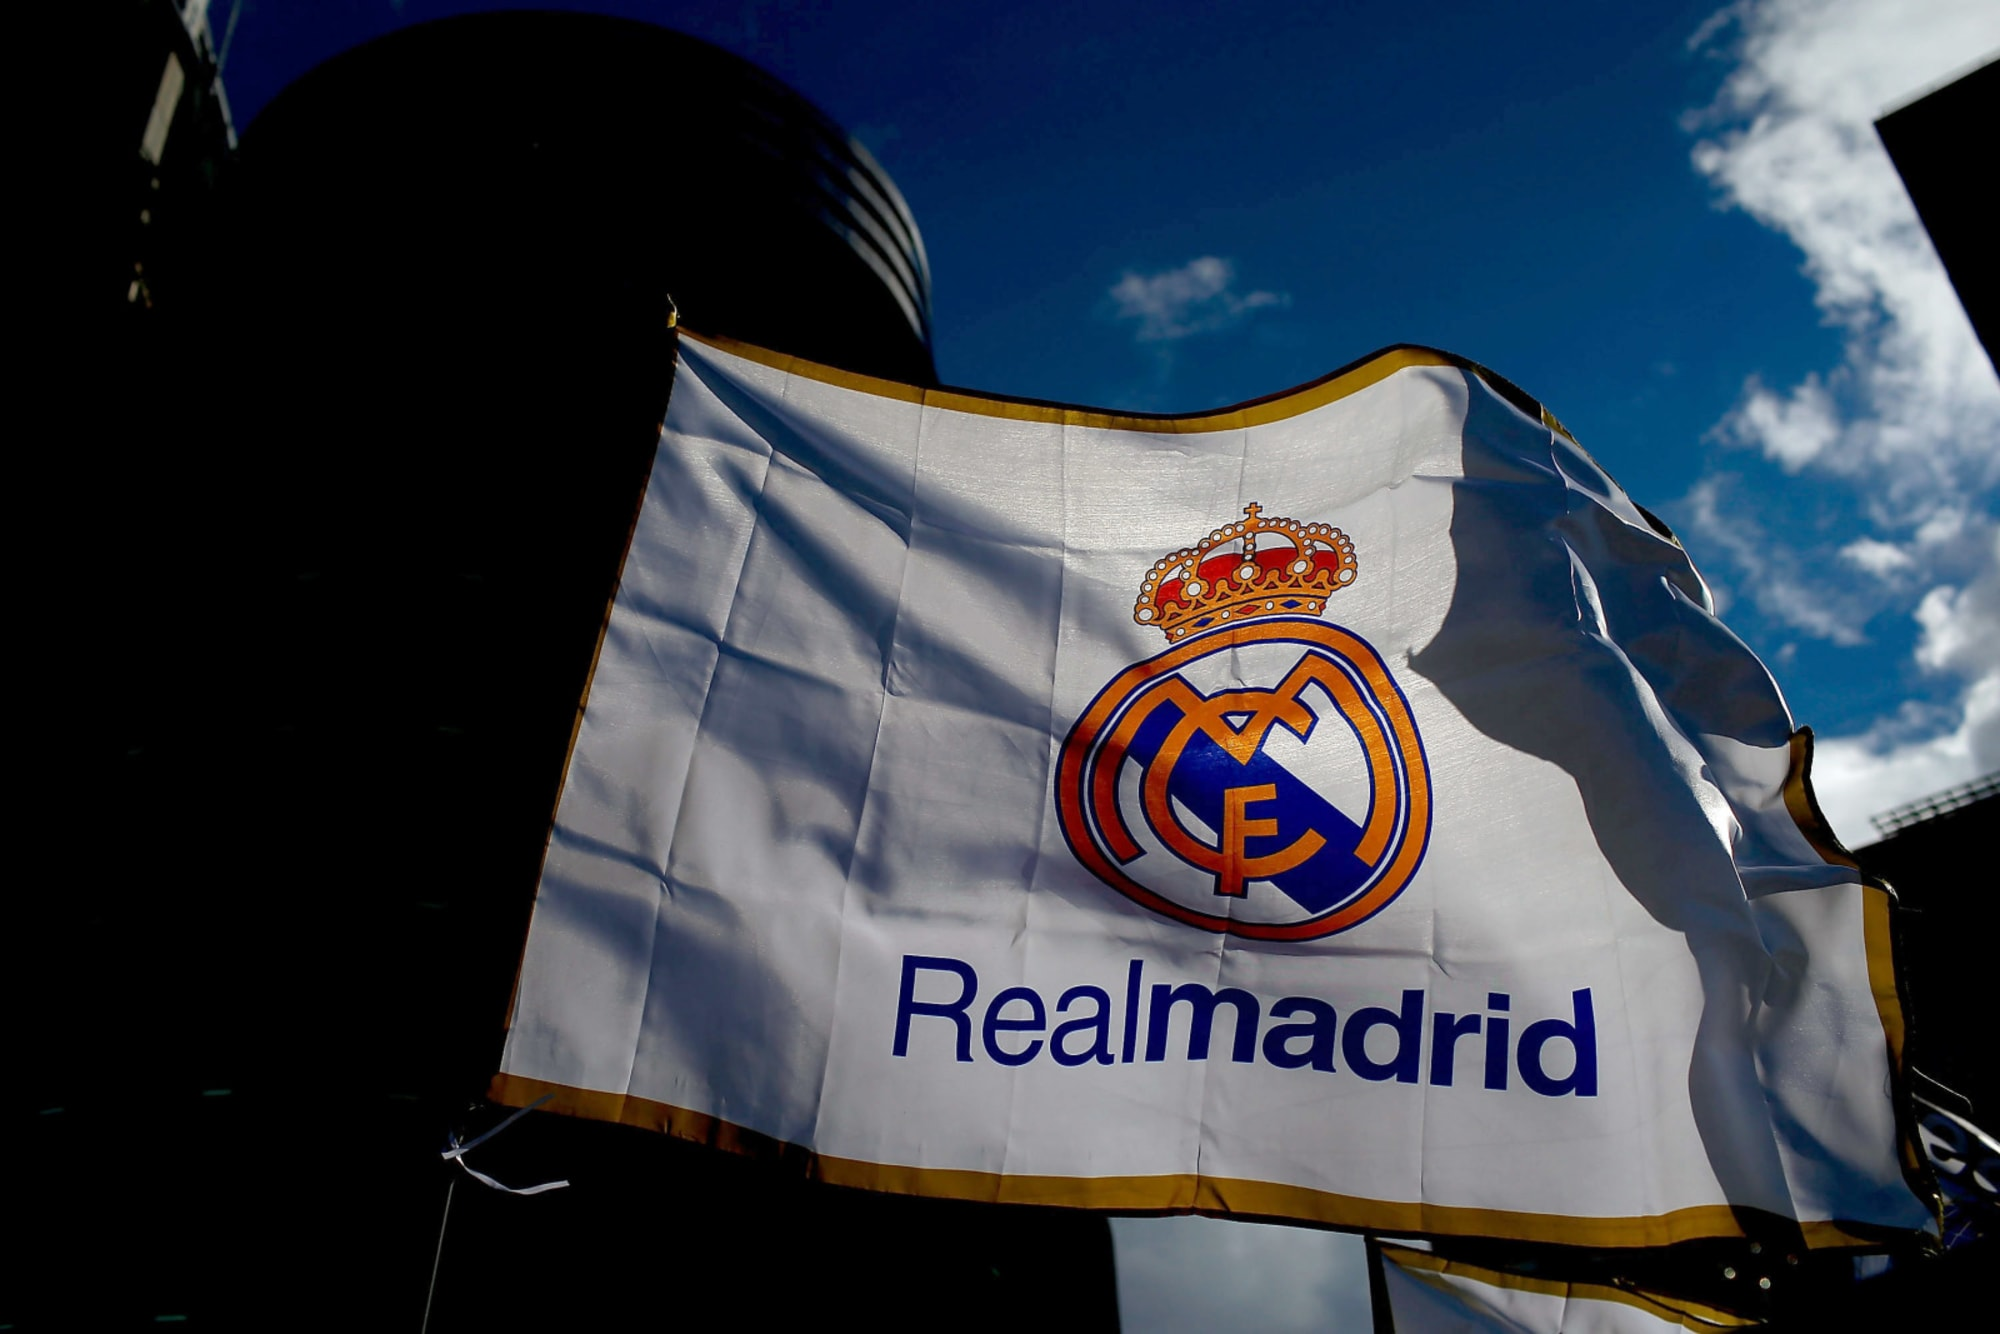 Manchester United face Real Madrid in transfer race for world-class star